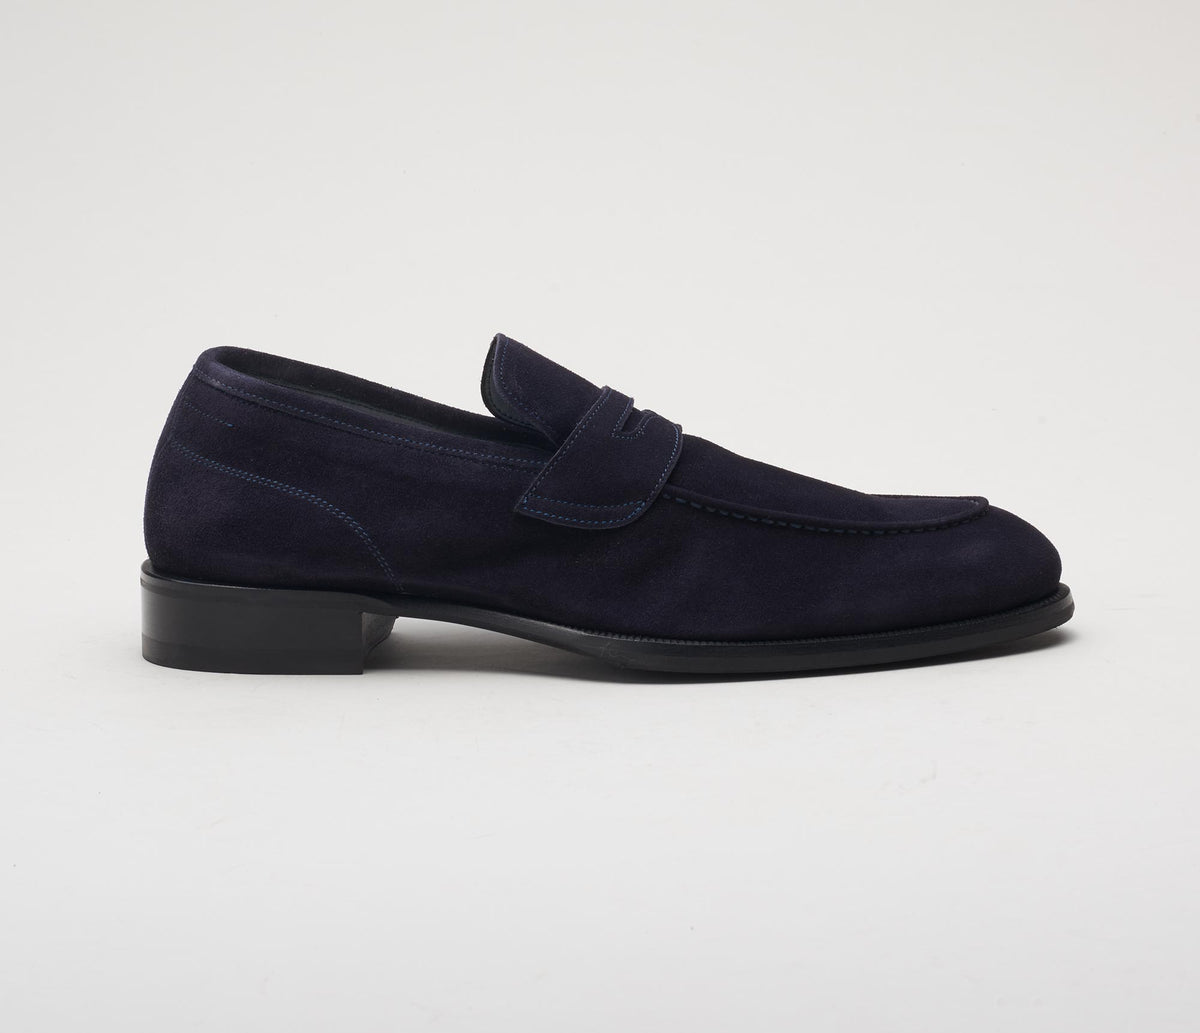 Brera Suede Loafer in Navy